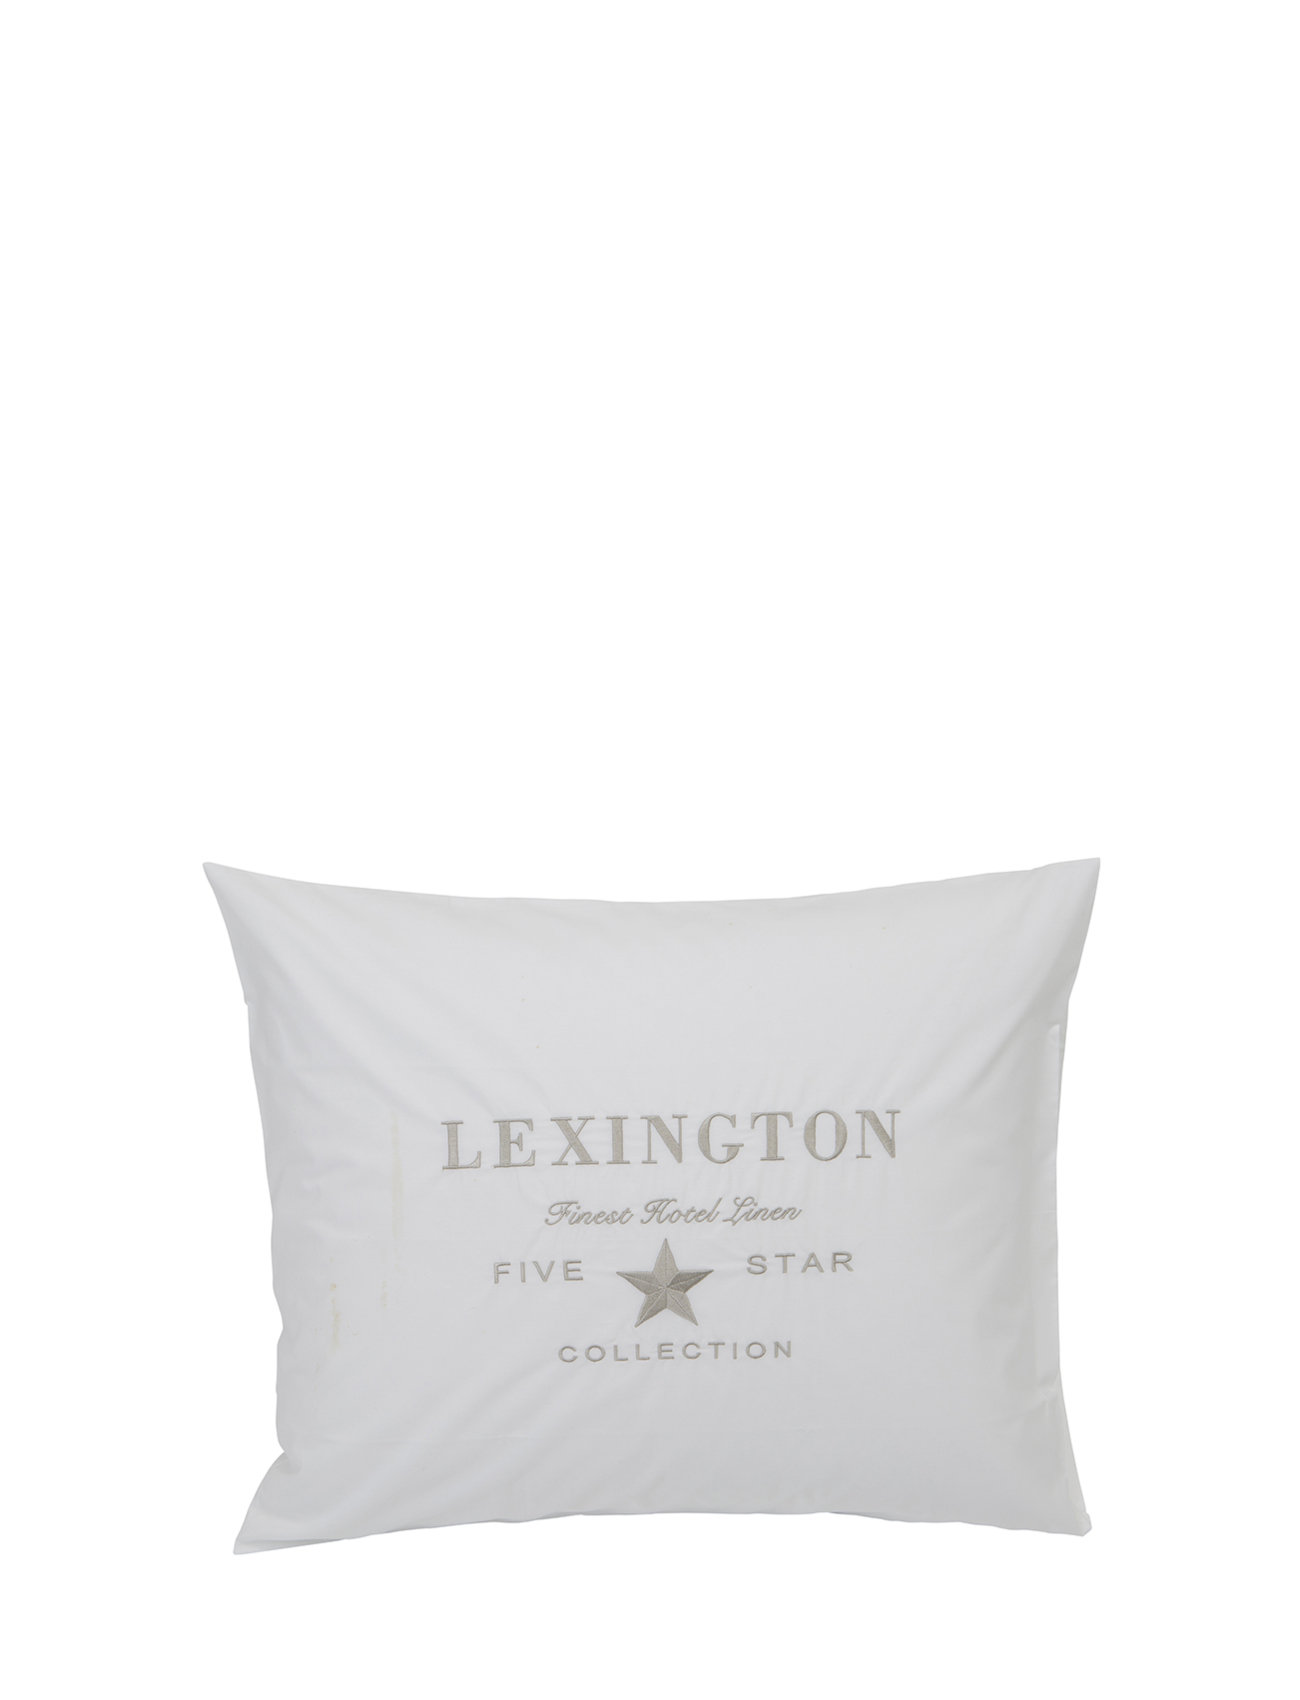 Lexington Home Hotel Embroidery White/Lt Beige Pillowcase - WHITE/LT BEIGE